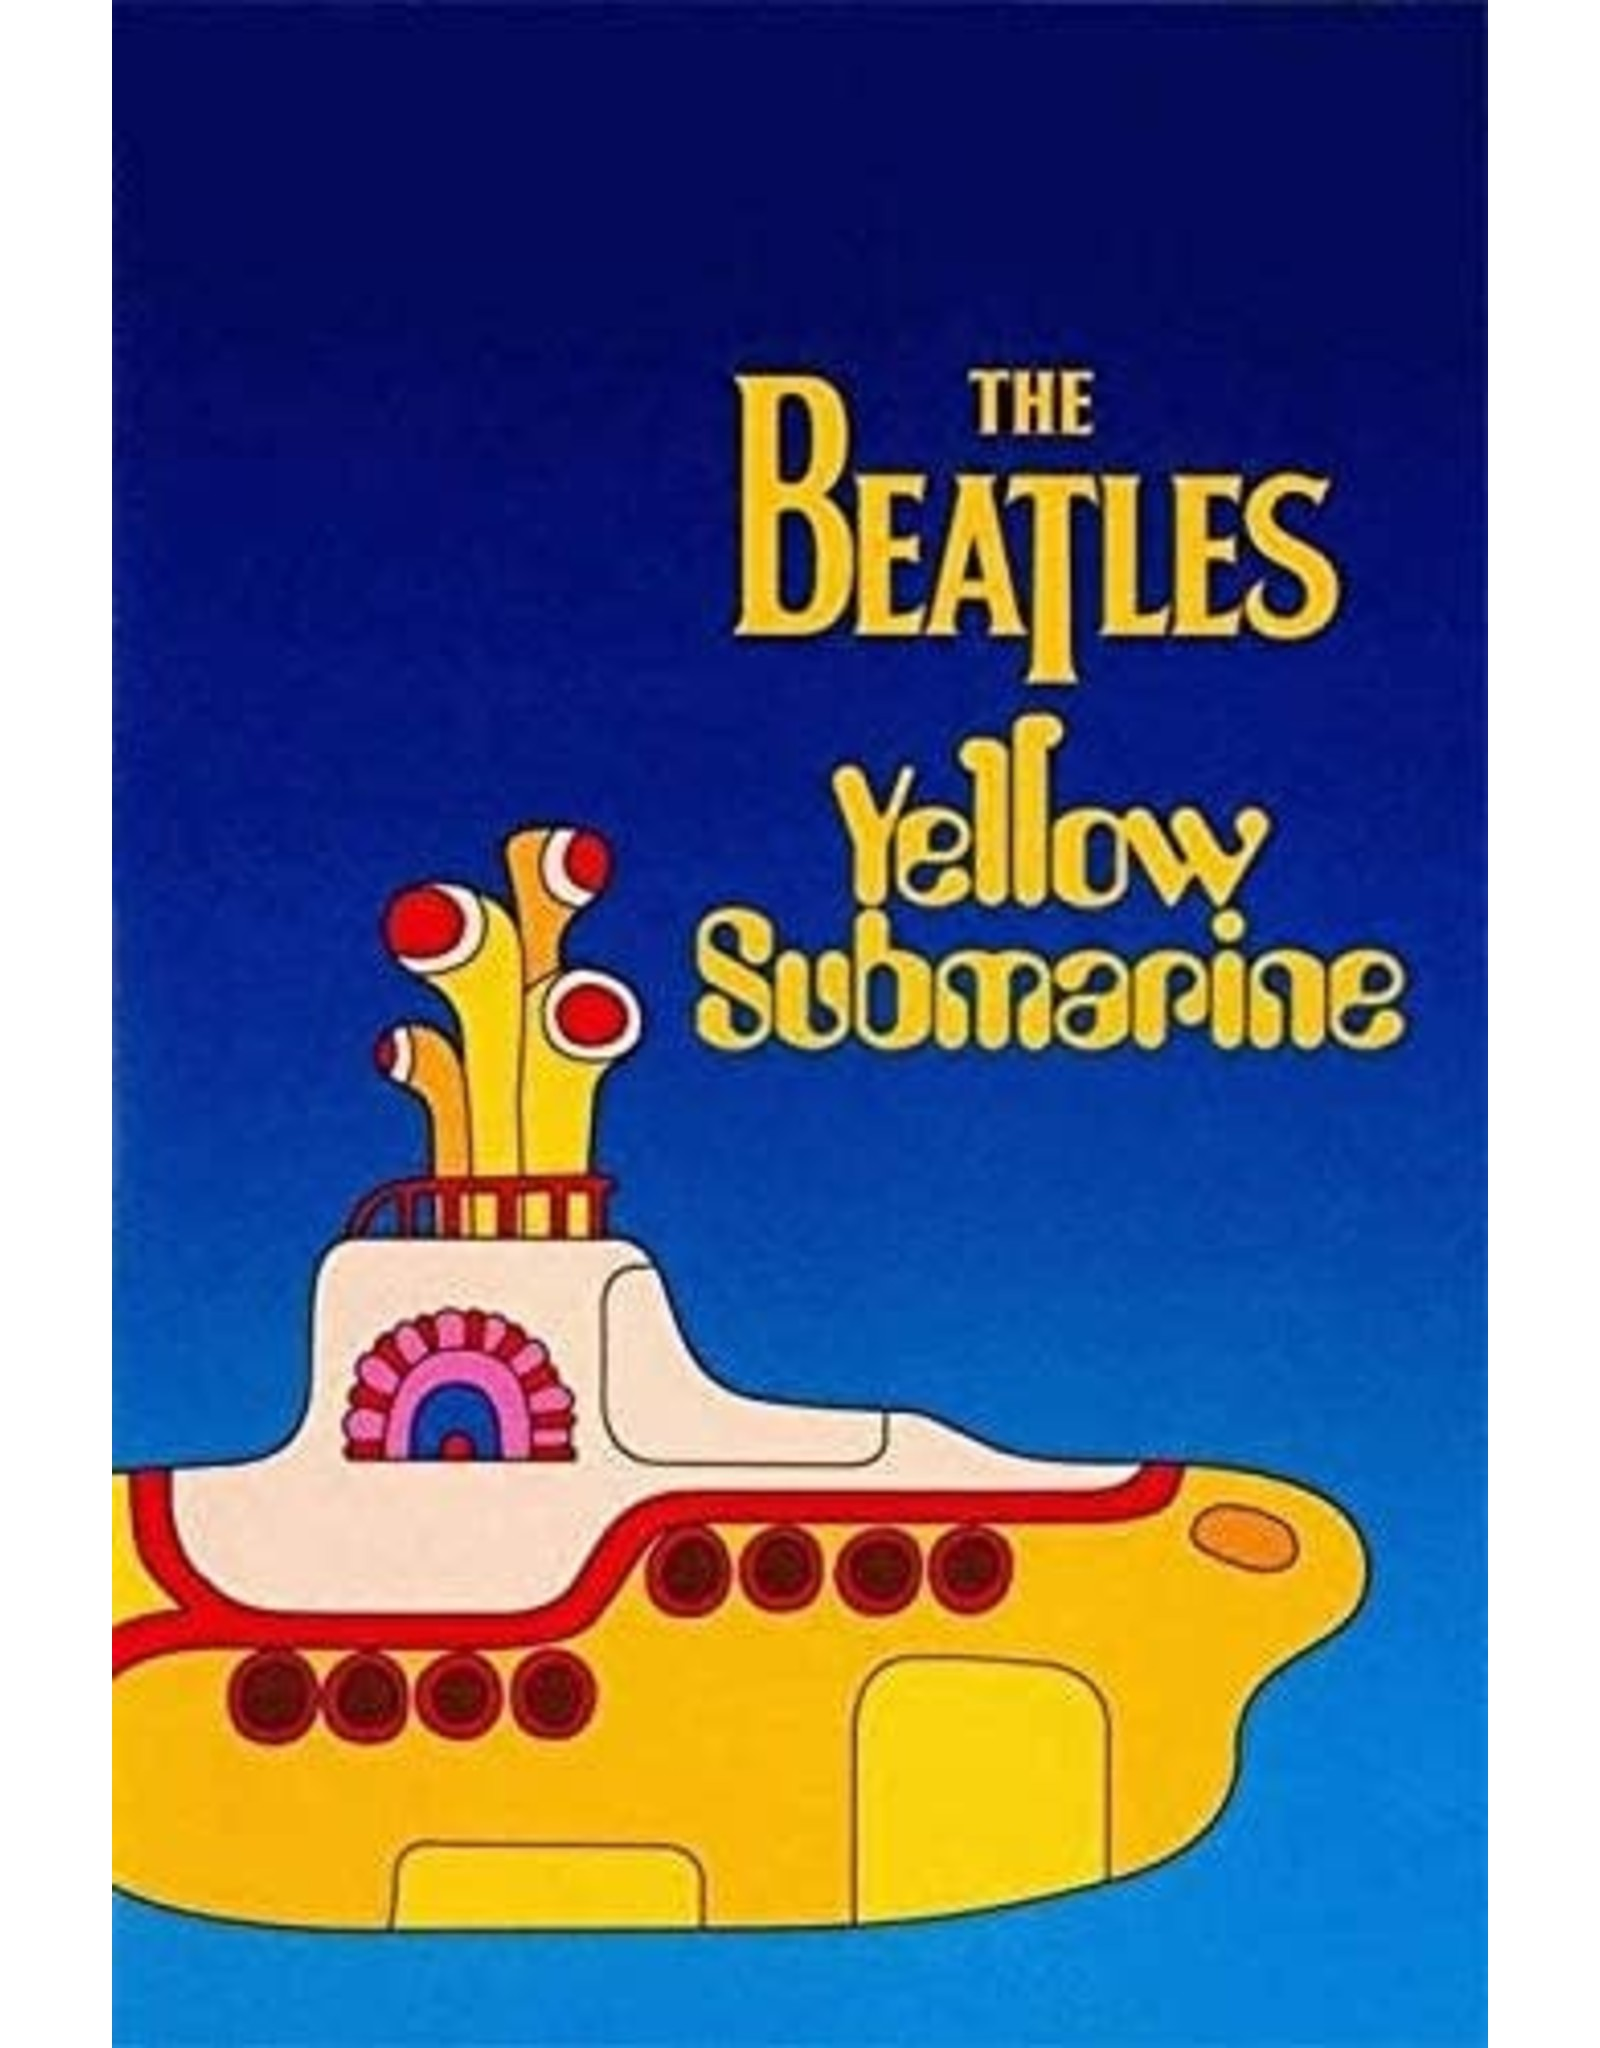 Cult and Cool Beatles, The - Yellow Submarine